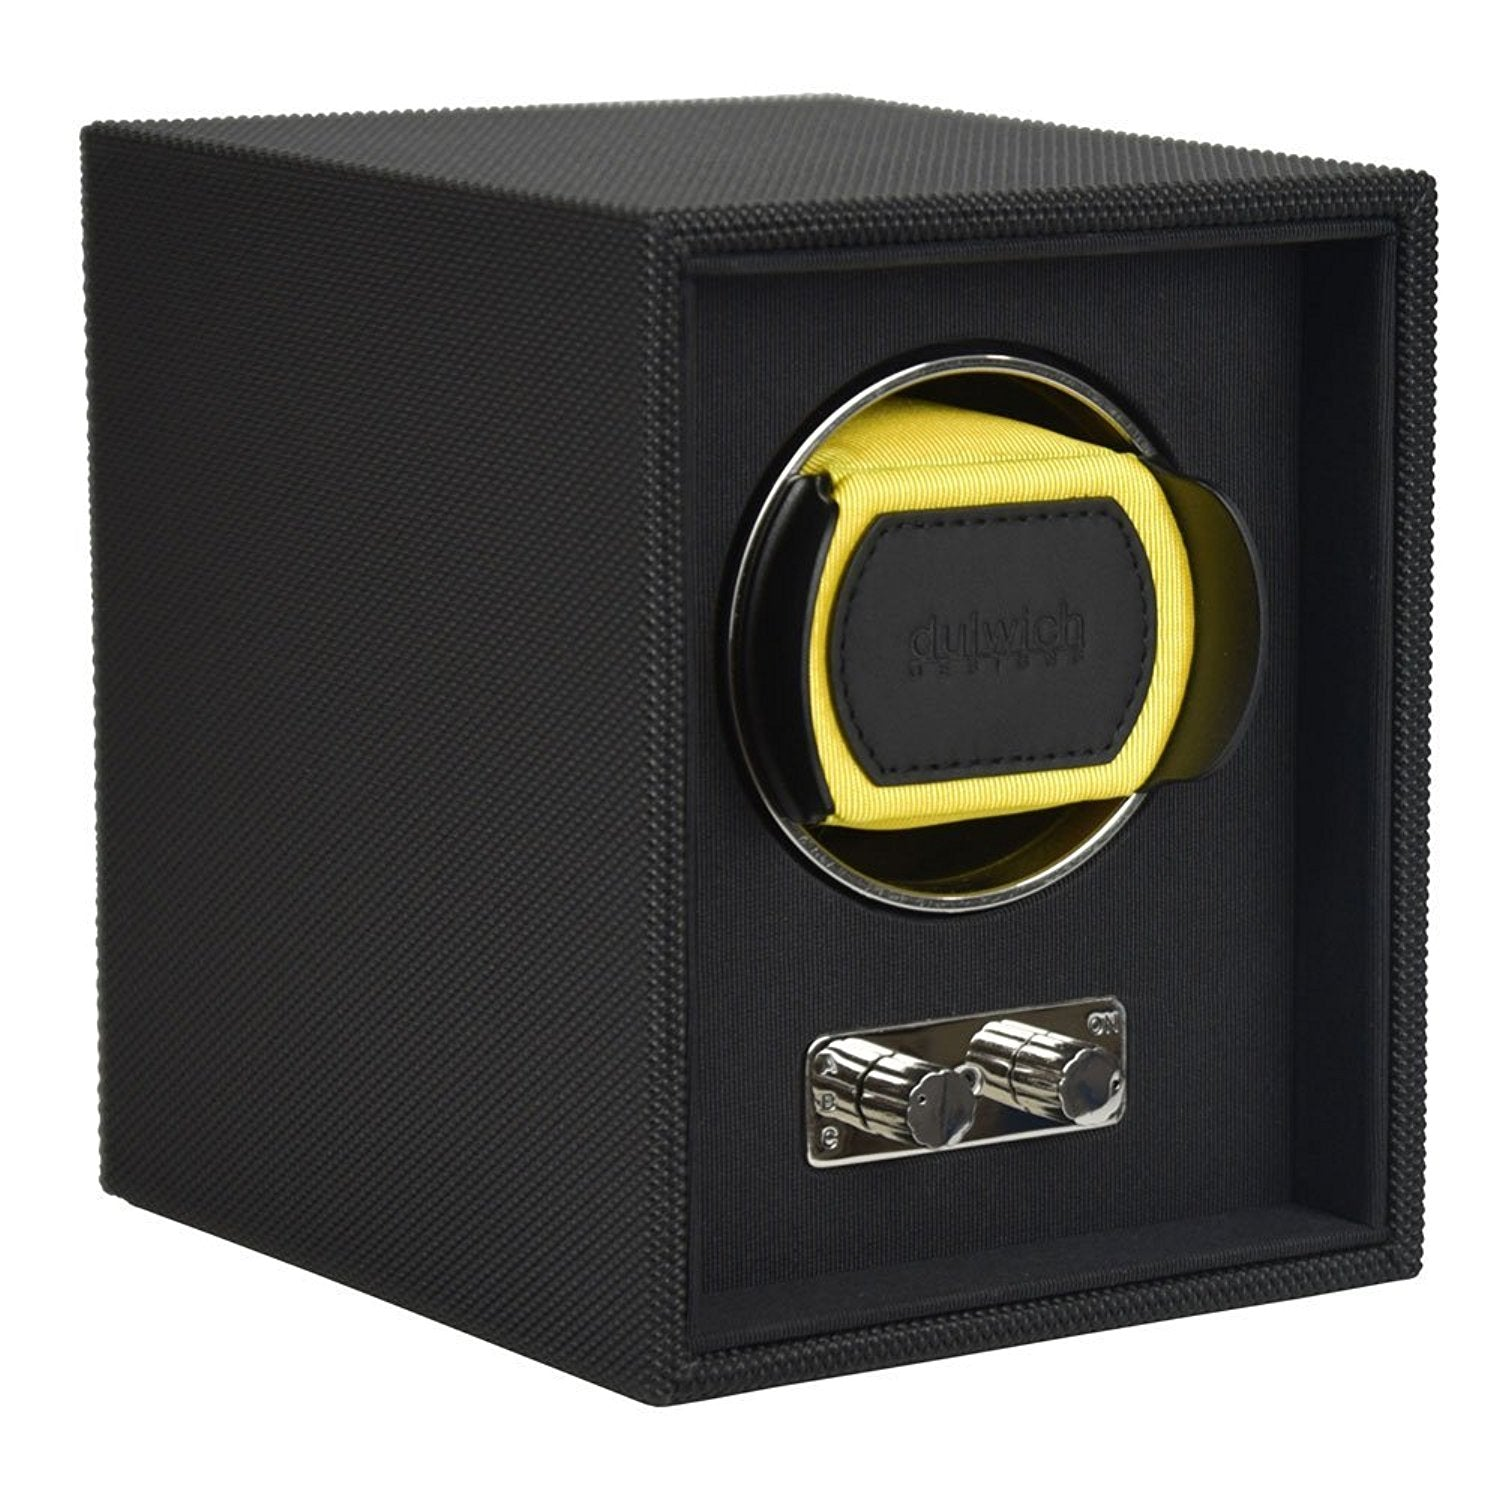 Goodwood Dulwich Yellow Single Watch rotator Watch Winder